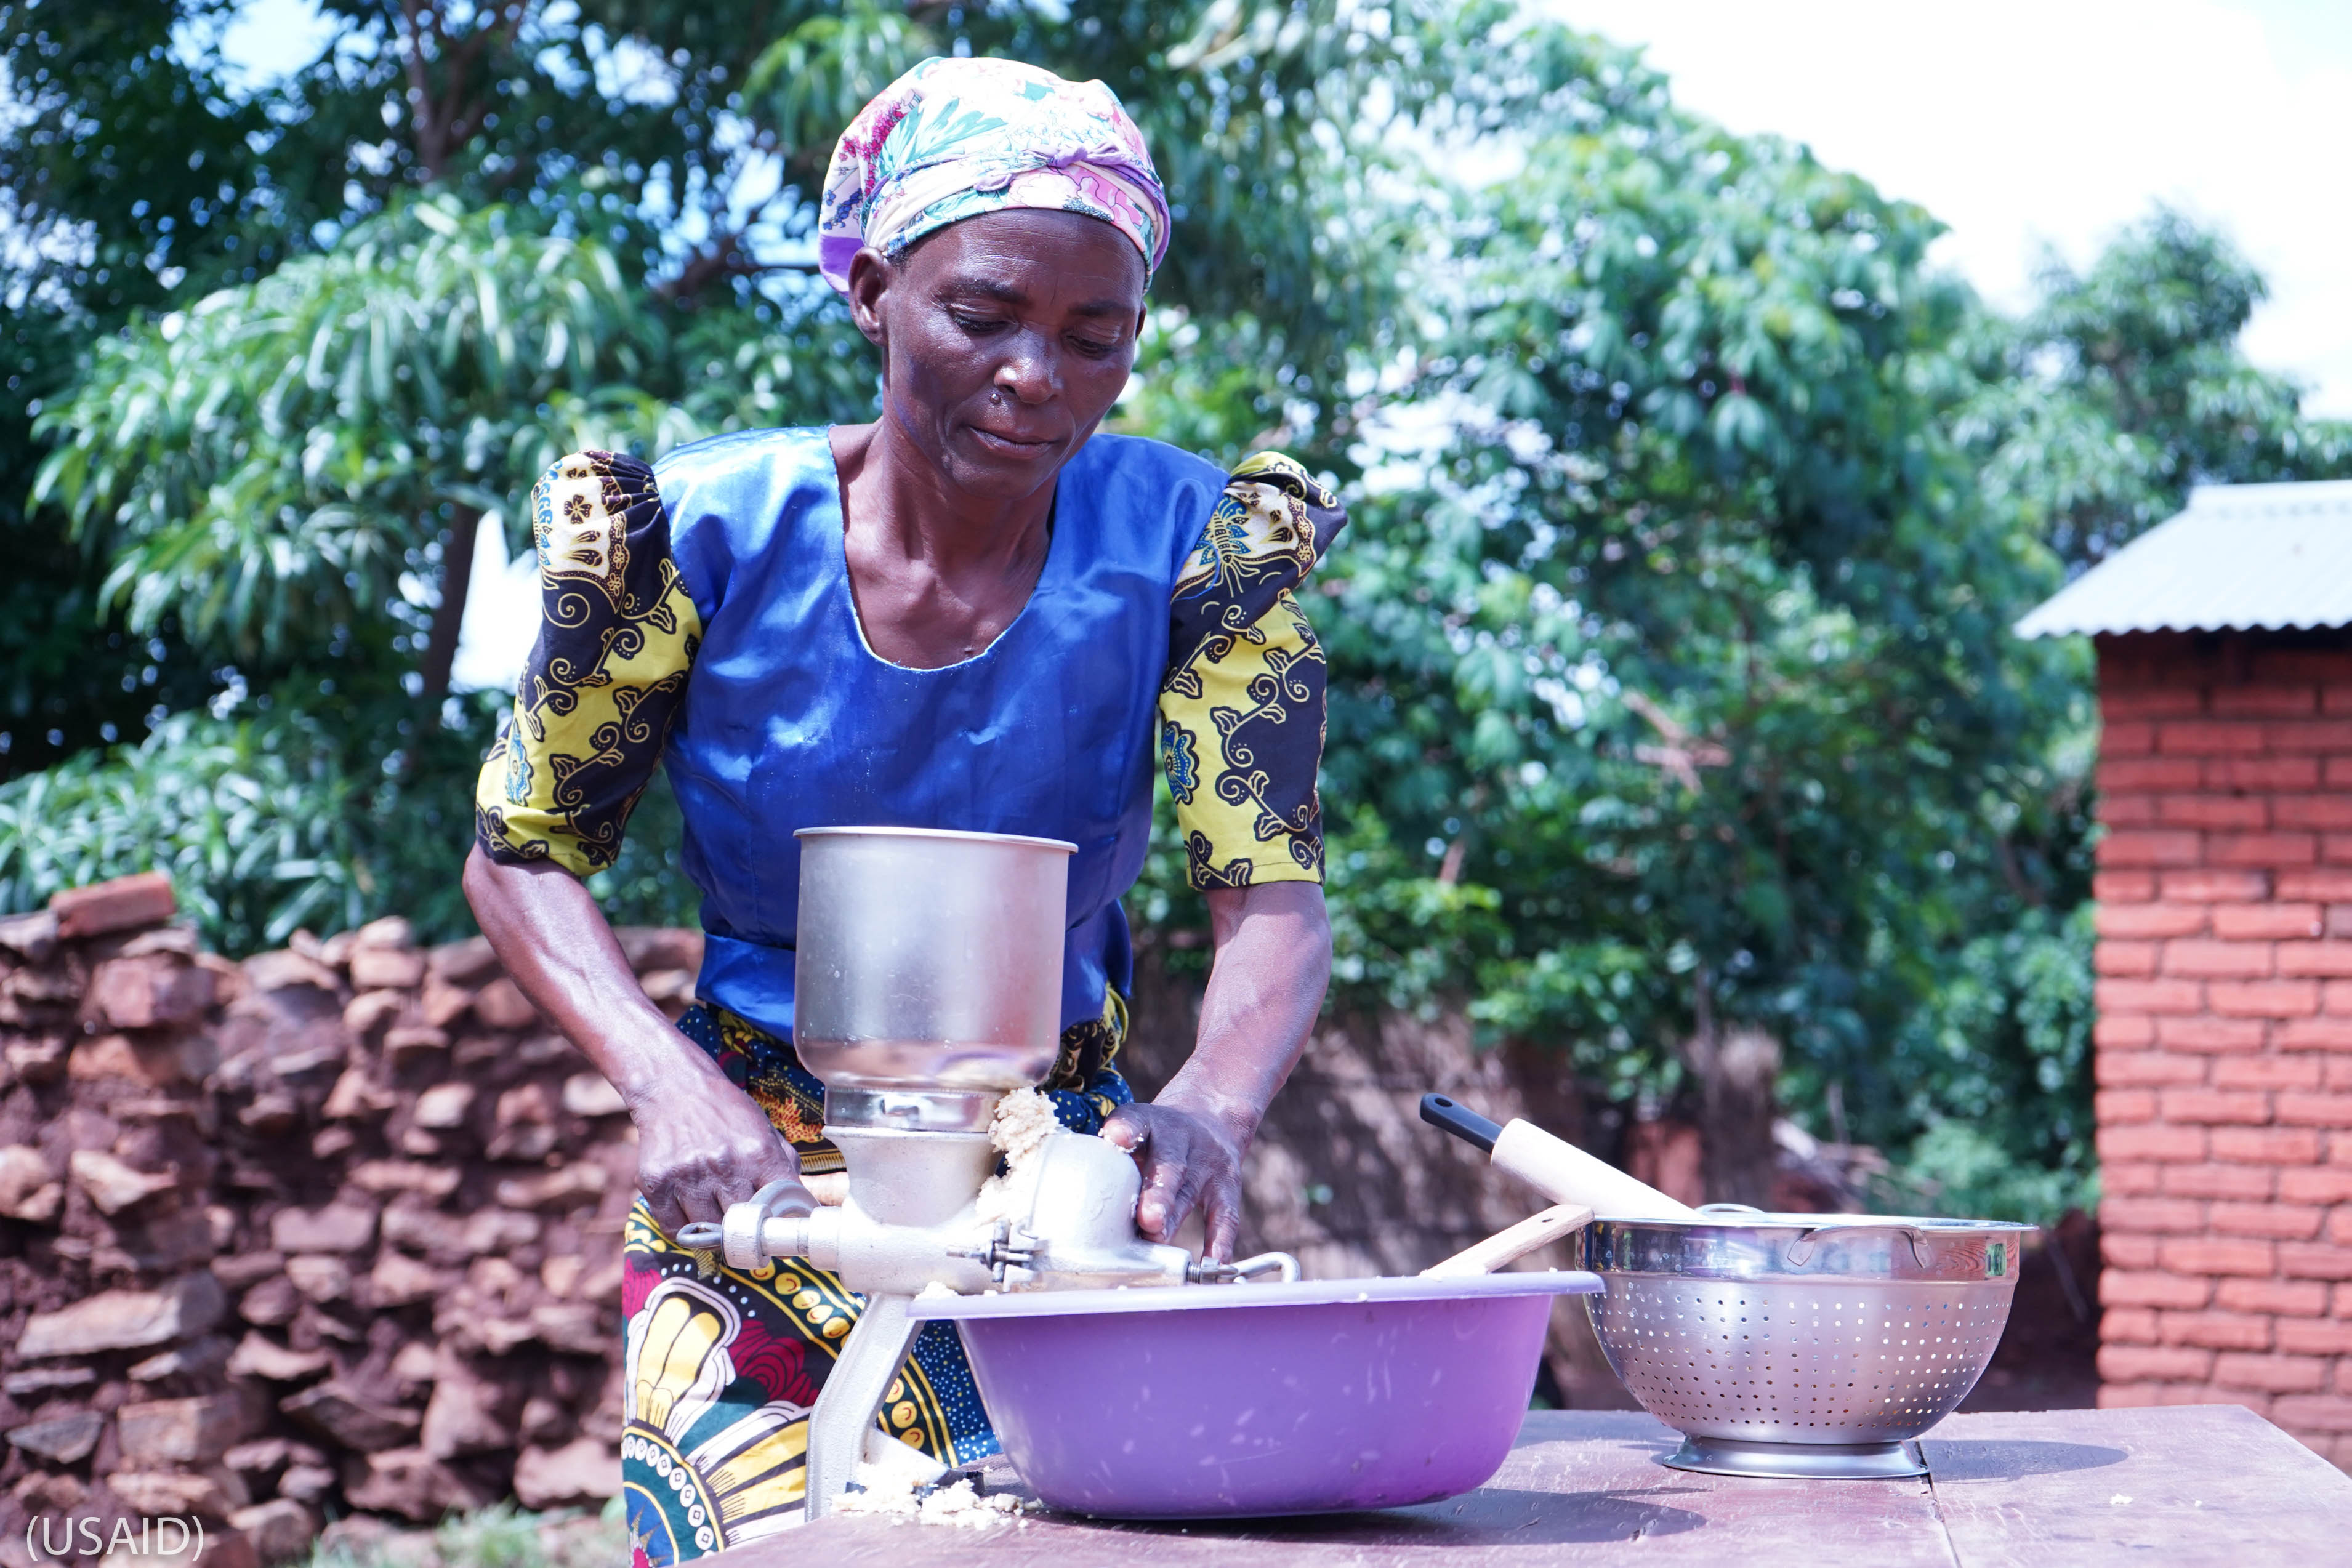 Woman using hand grinder and bowl (USAID)